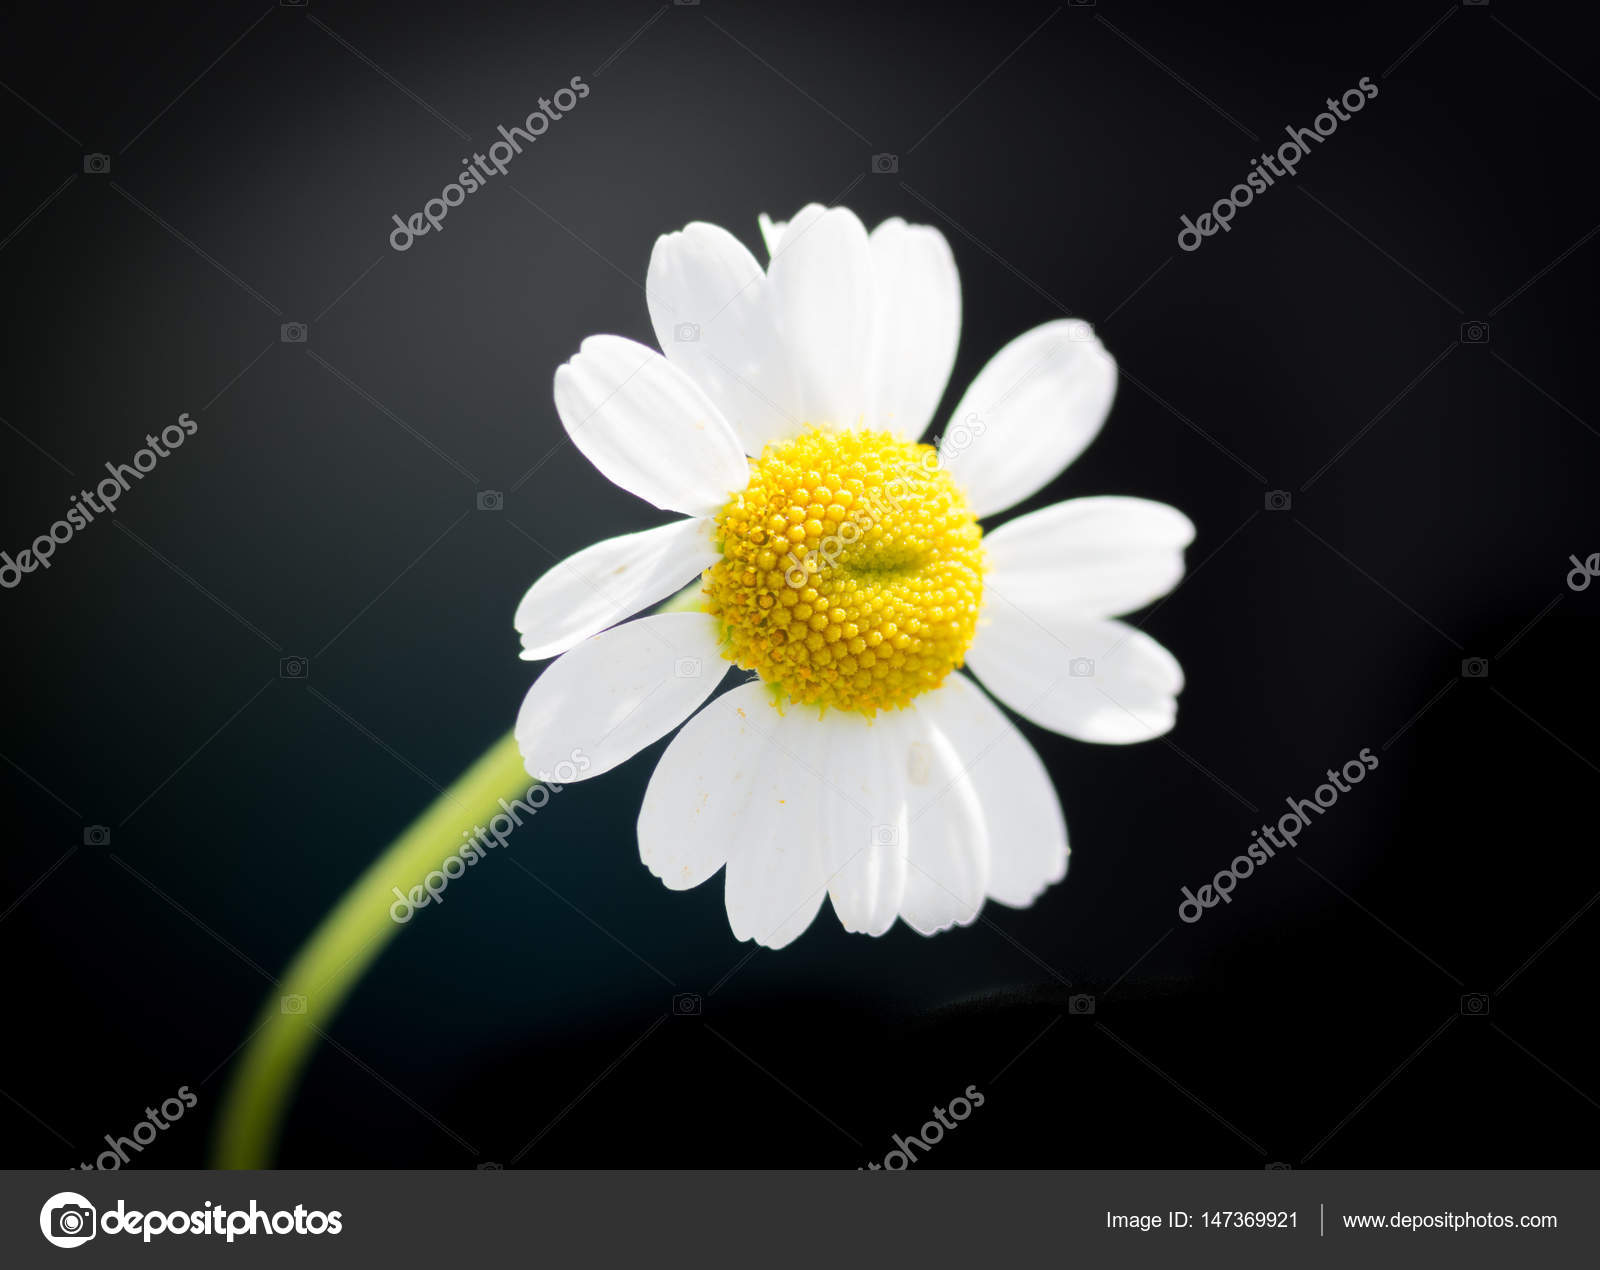 The chamomile flower stock photo rabad 147369921 chamomile or camomile is the common name for several daisy like plants of the family asteraceae that are commonly used to make herb infusions to serve izmirmasajfo